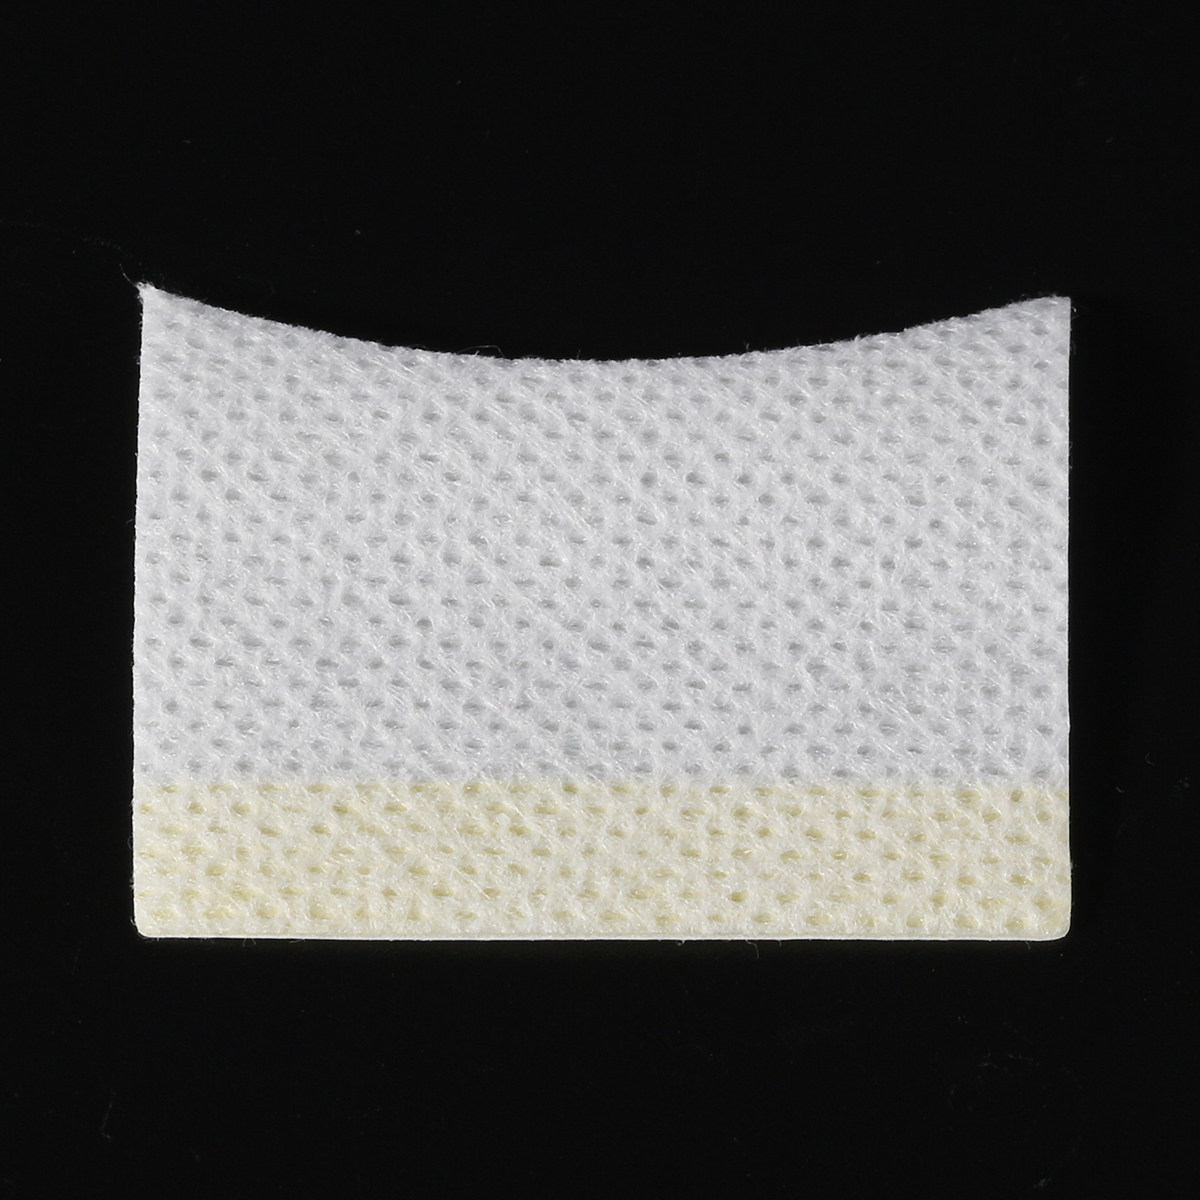 LuckyFine 40pcs Eyelash Extension Removal Protection Pad Non-woven Growing Grafting Tool